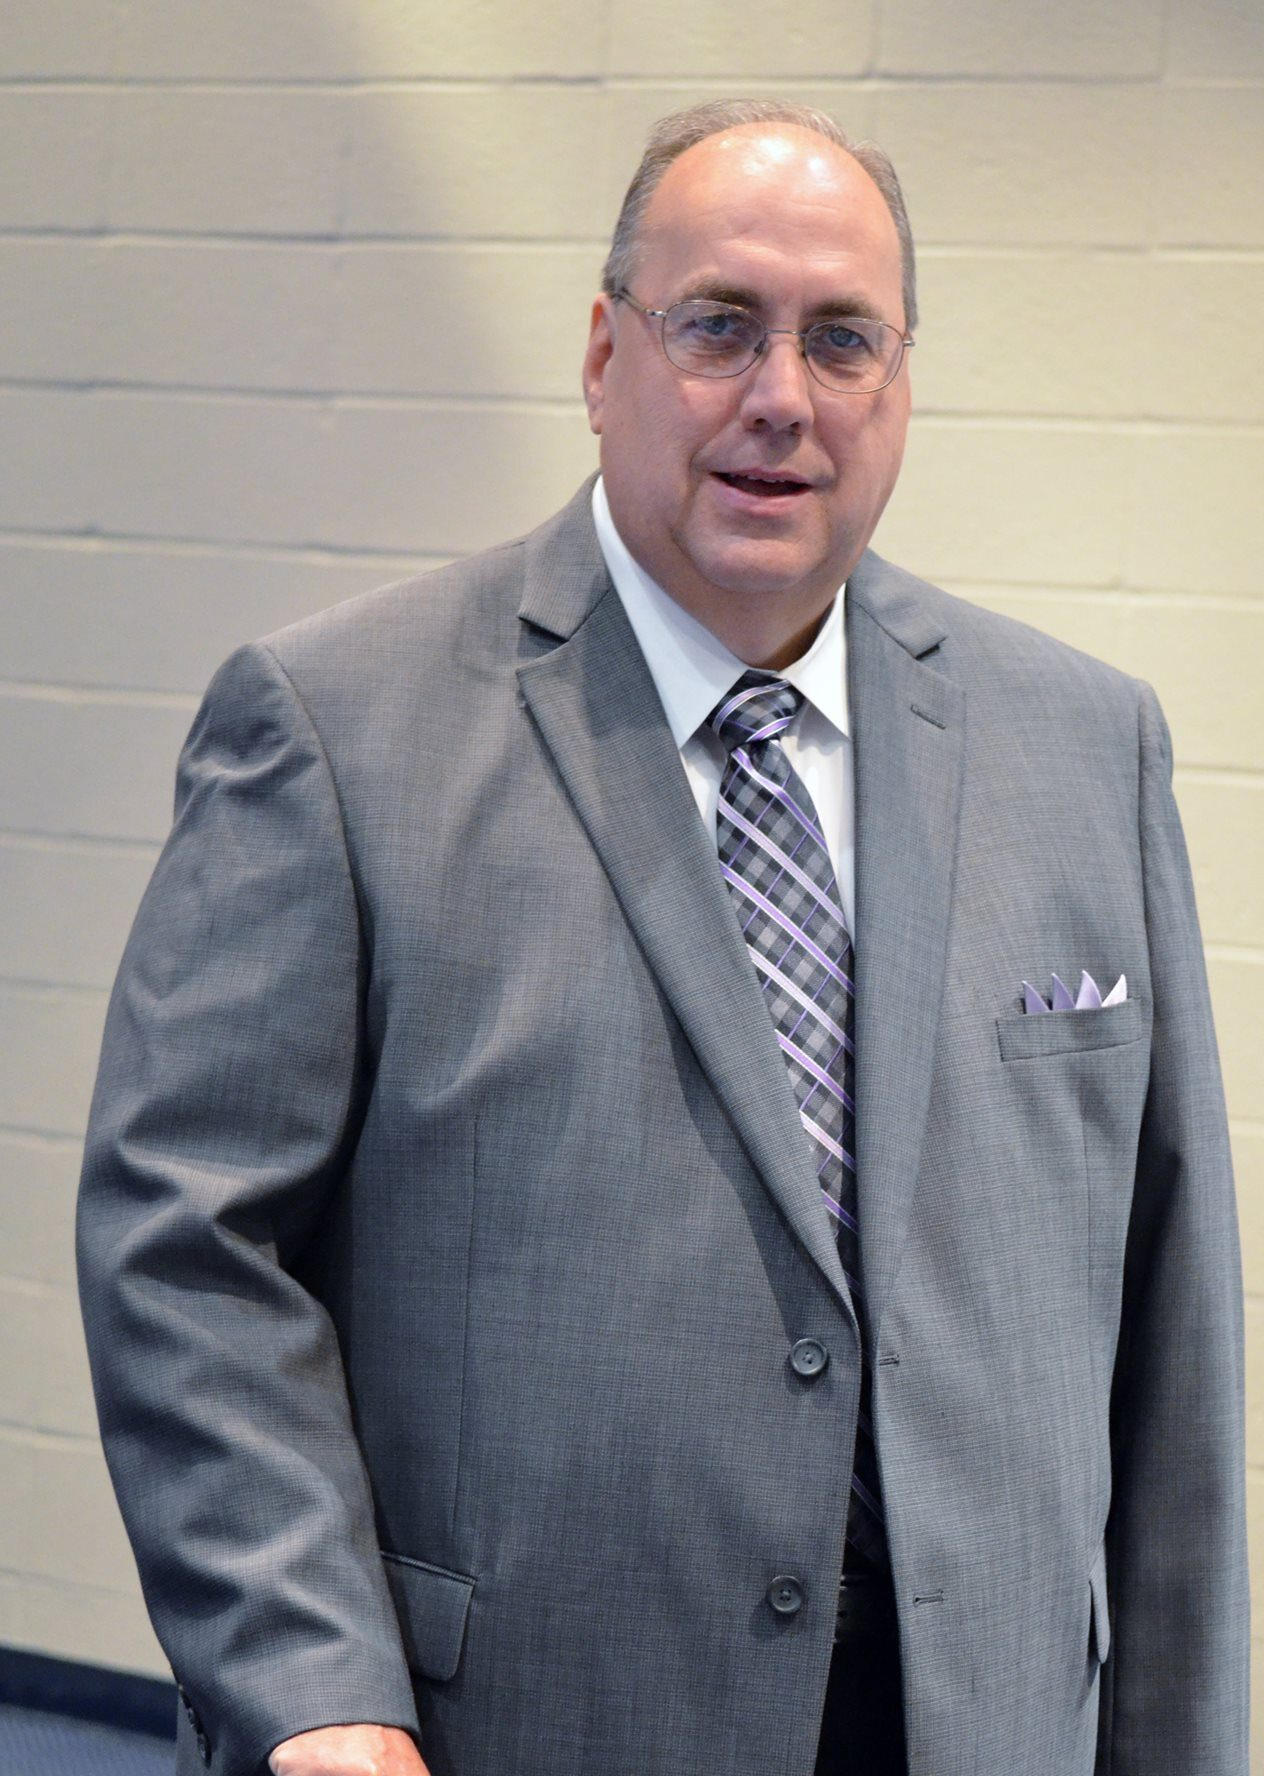 Pastor Russell Brewer